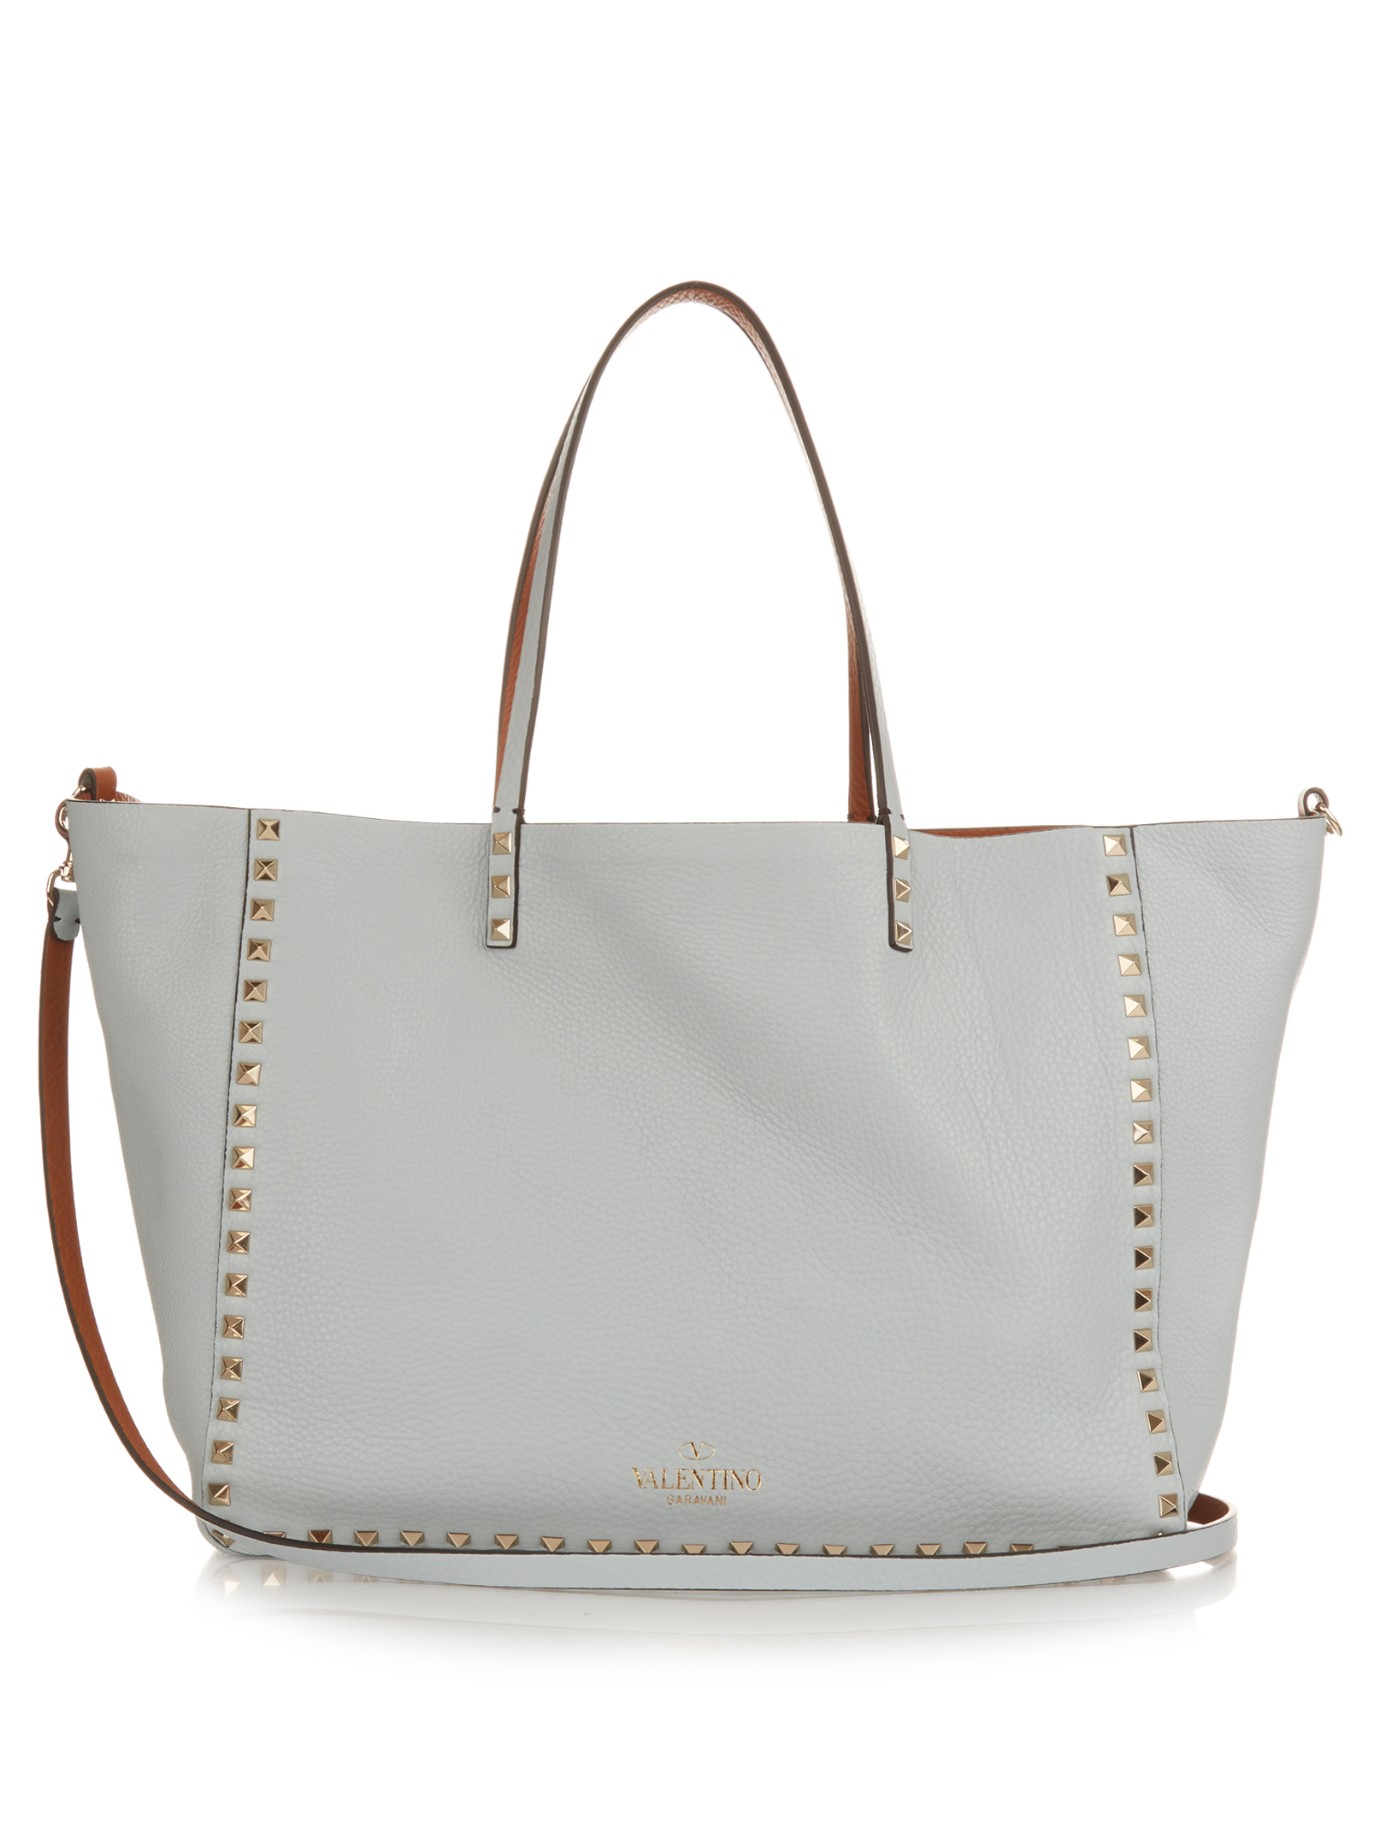 55a7d53091 Valentino Rockstud Double Reversible Medium Tote in Blue - Lyst